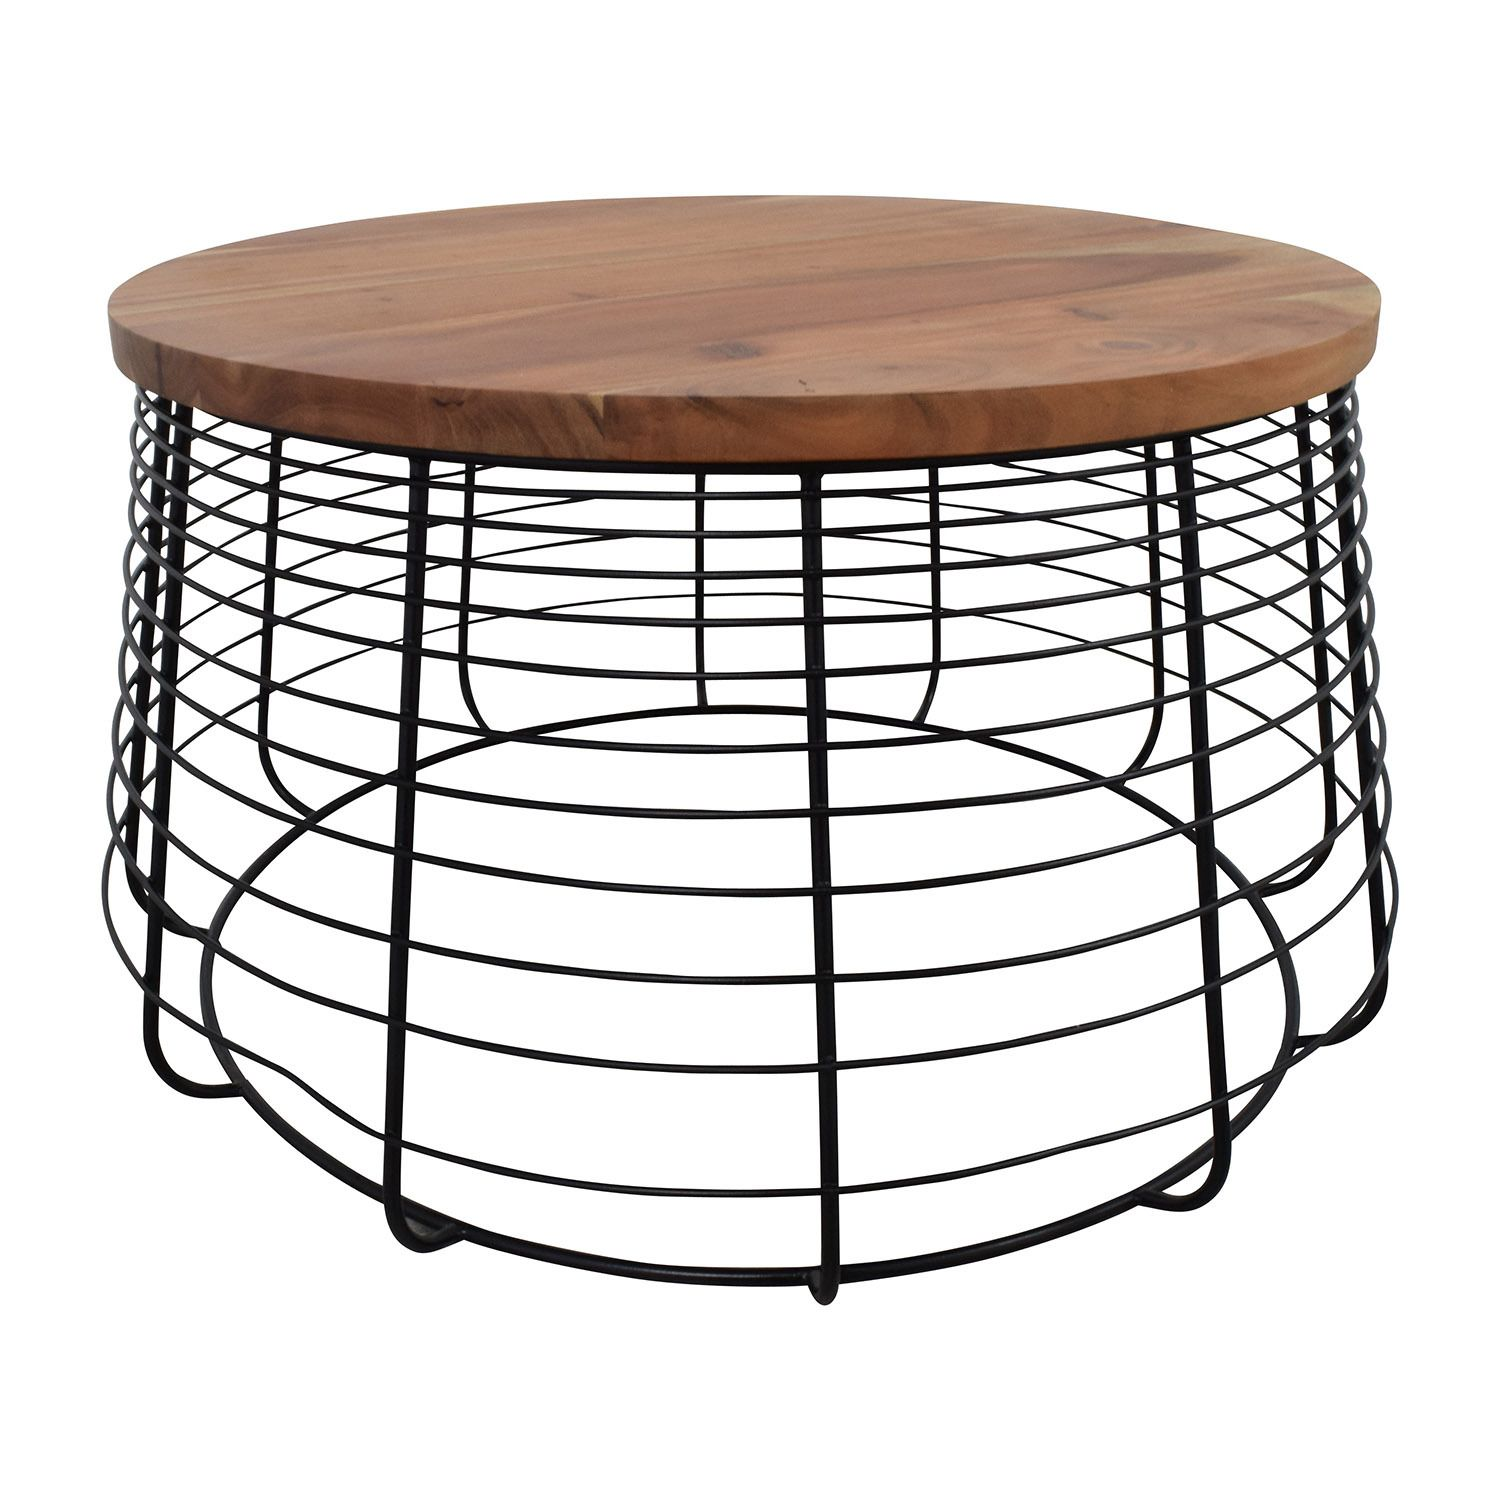 21+ White drum coffee table canada inspirations